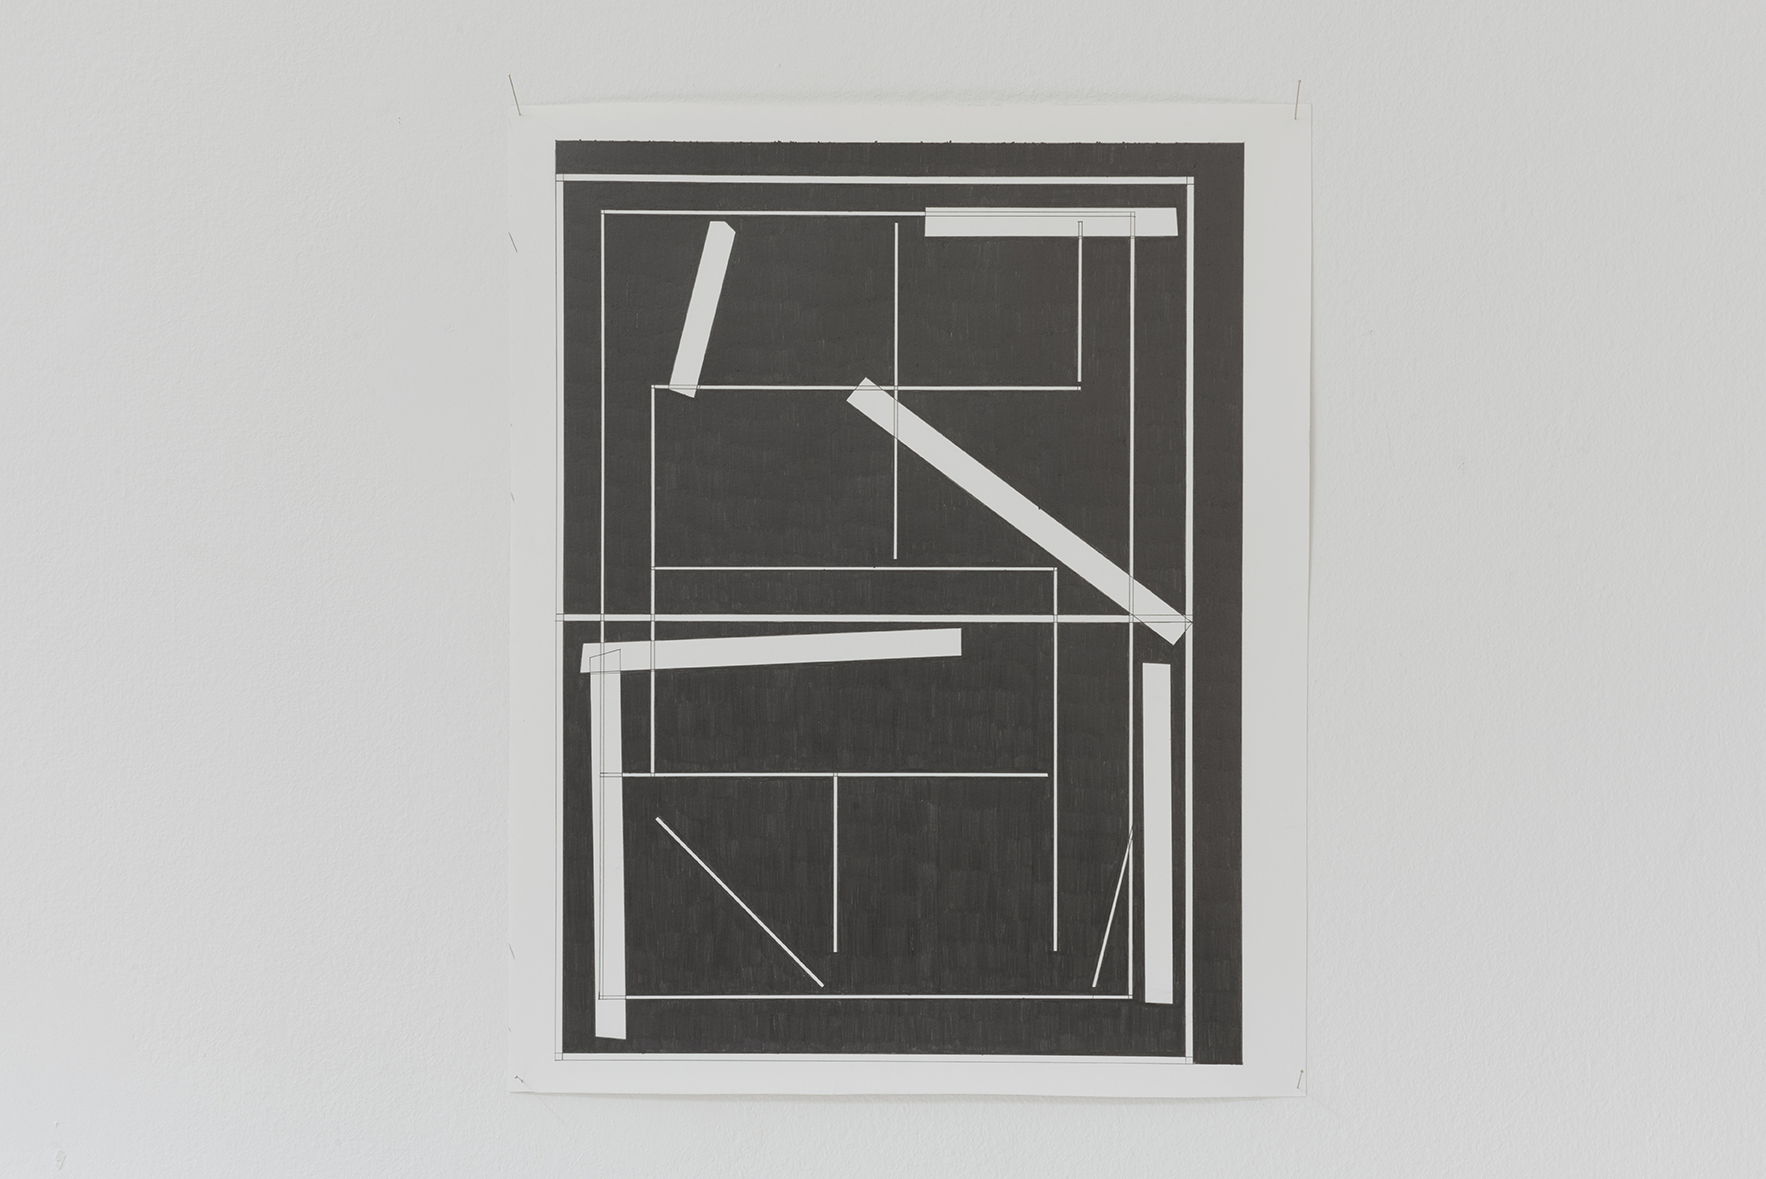 The Complete Works, 2015. | A Drawing Placed Between Two Objects (with Mark Manders) | ProjecteSD